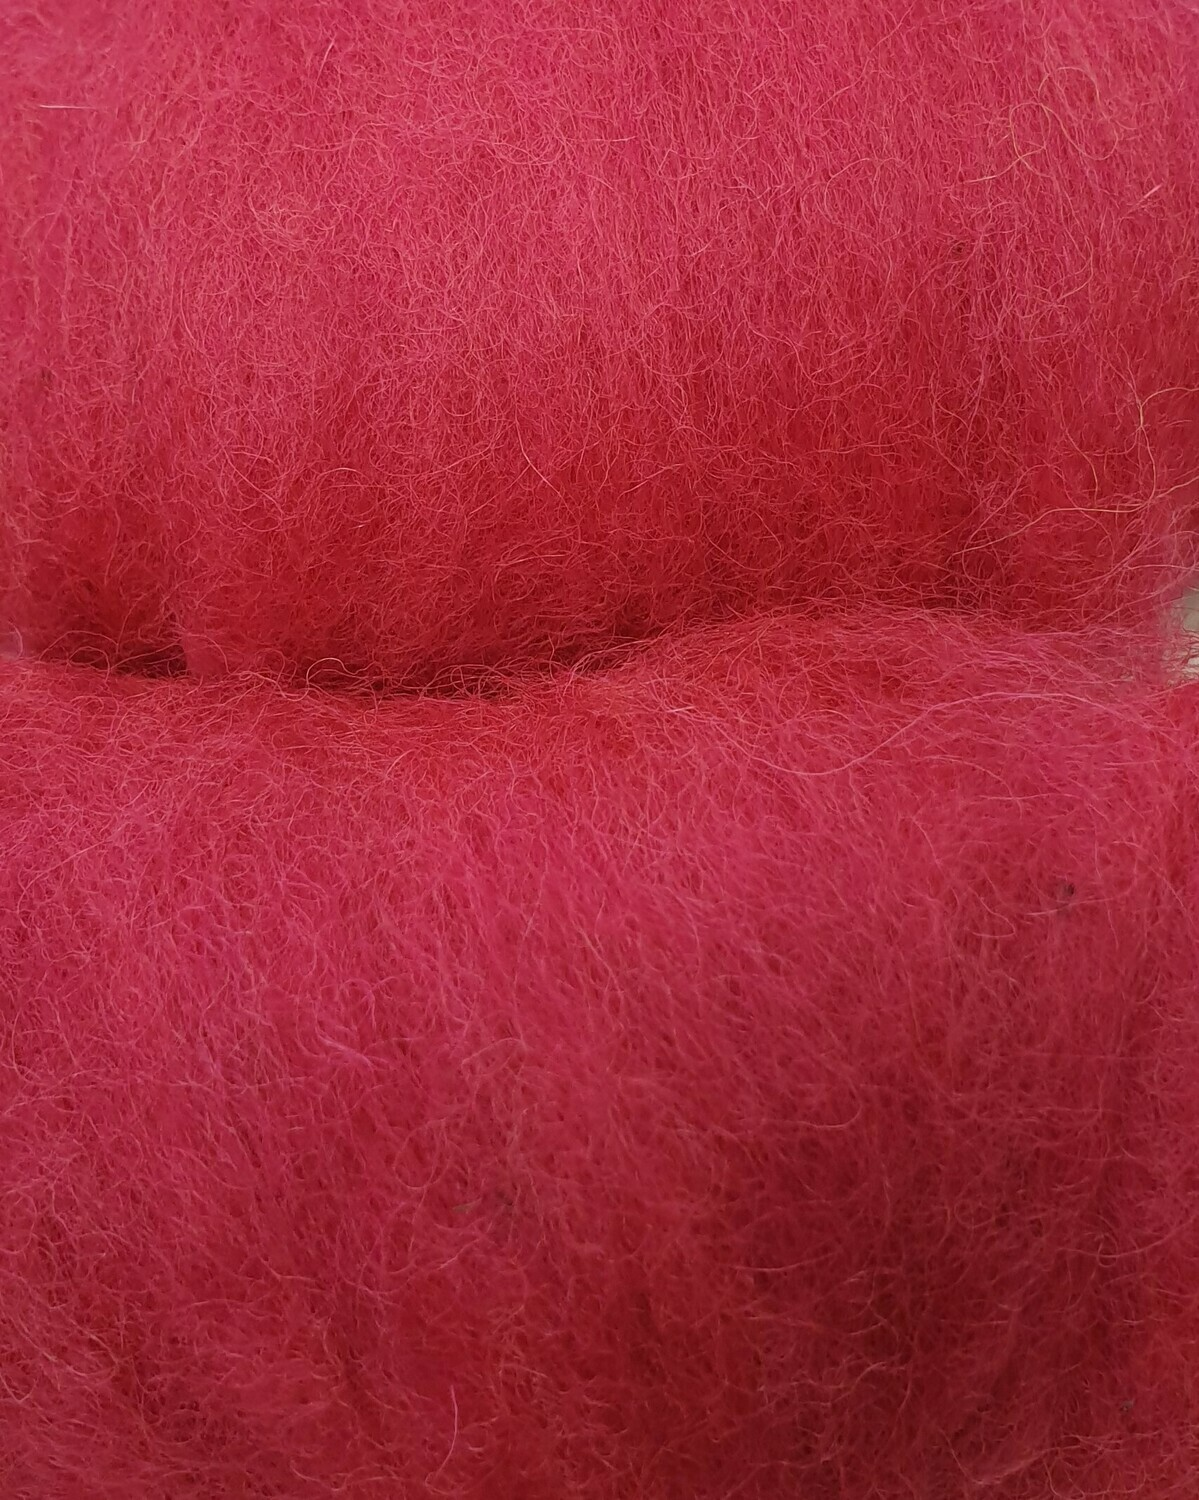 Carded Felting Wool  20 g - Bright Pink